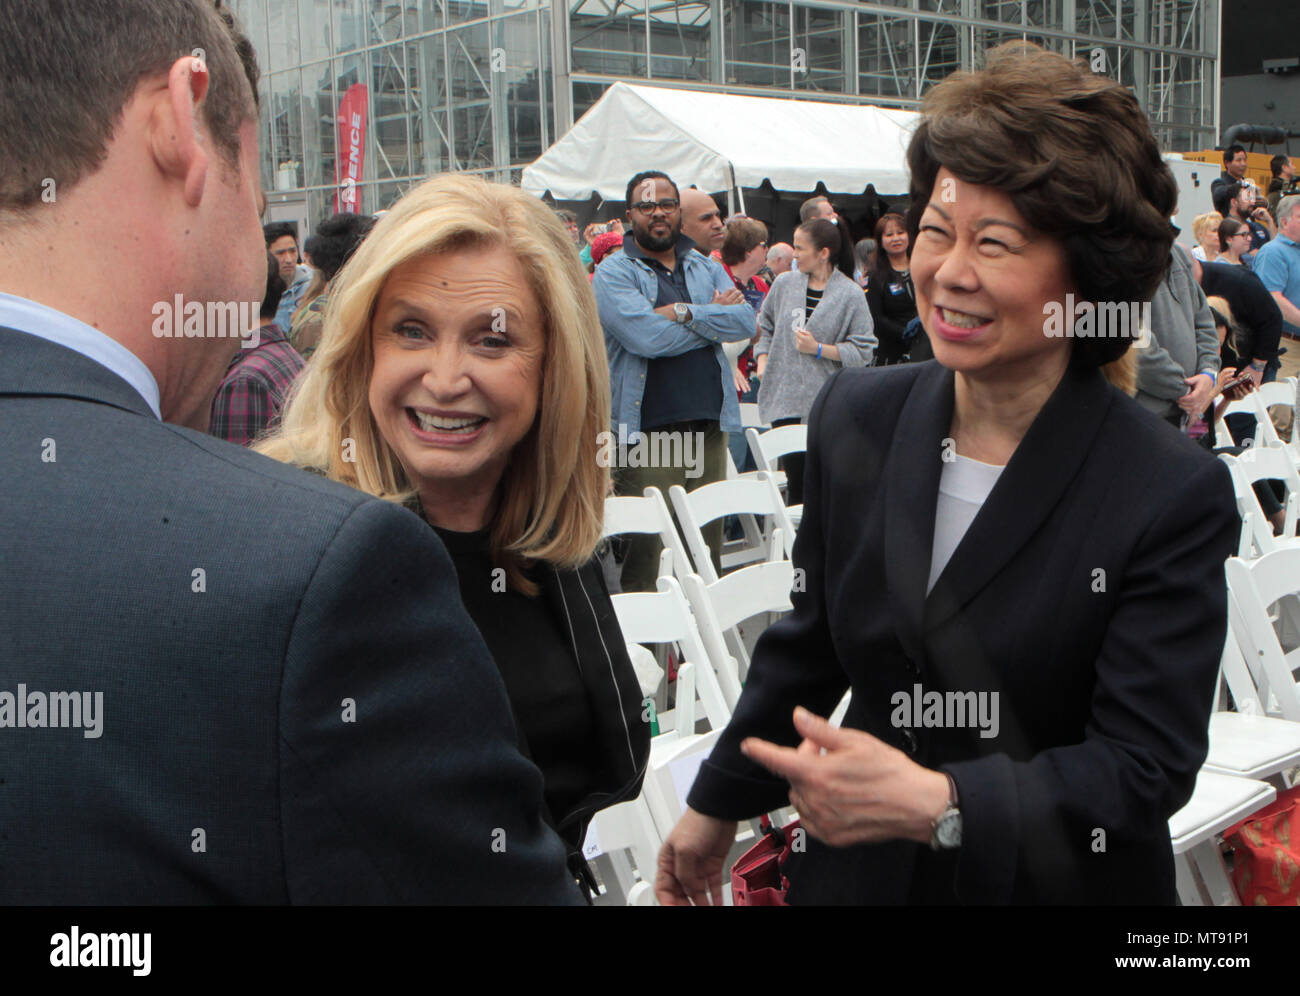 New York, NY, USA. 28th May, 2018. (L-R) Elaine Chao, U.S. Secretary of Transportation and Carolyn Maloney, U.S. Representative attend the 2018 Memorial Day Ceremony held aboard the U.S.S Intrepid Sea, Air, Space Museum Complex on May 28, 2018 in New York City. Credit: Mpi43/Media Punch/Alamy Live News - Stock Image